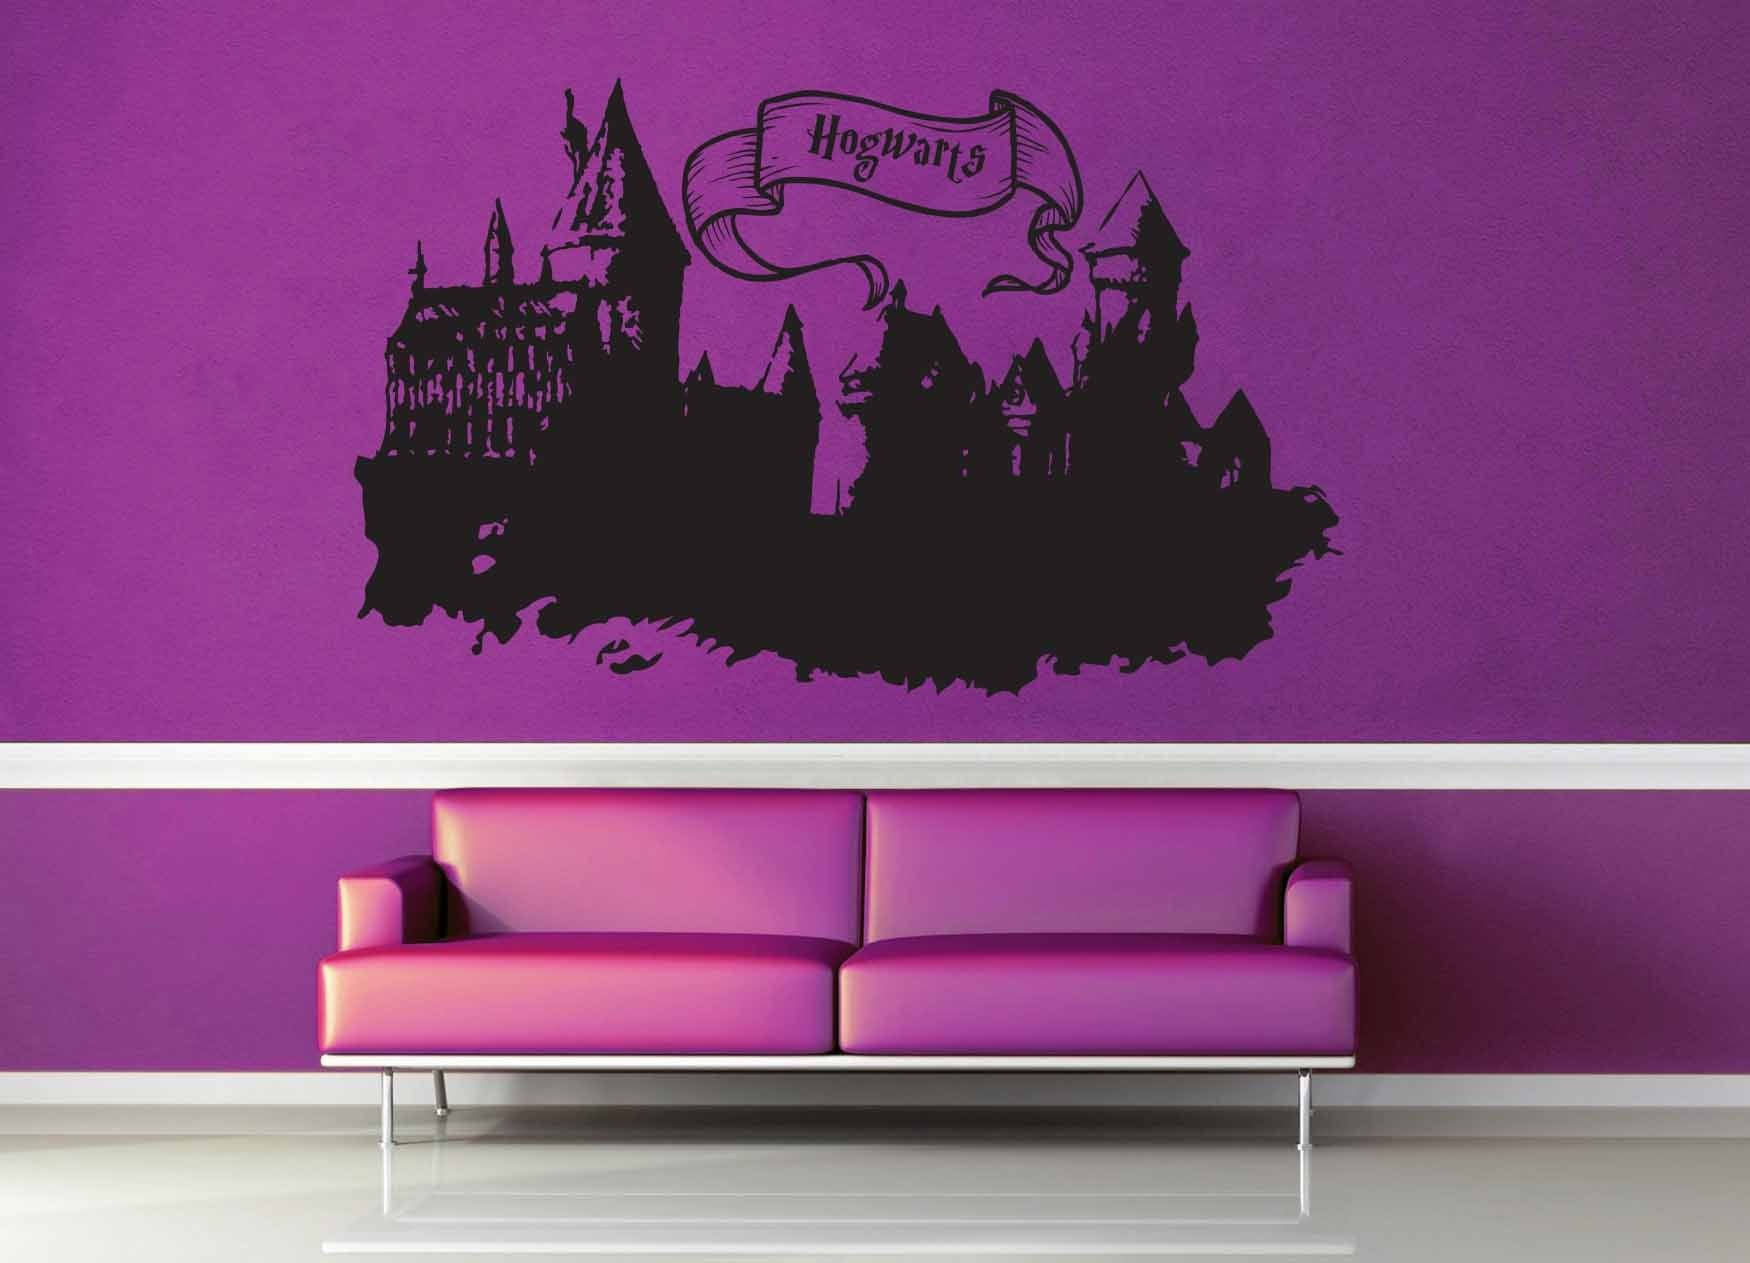 Hogwarts Castle - Harry Potter - Wall Decal - No 2